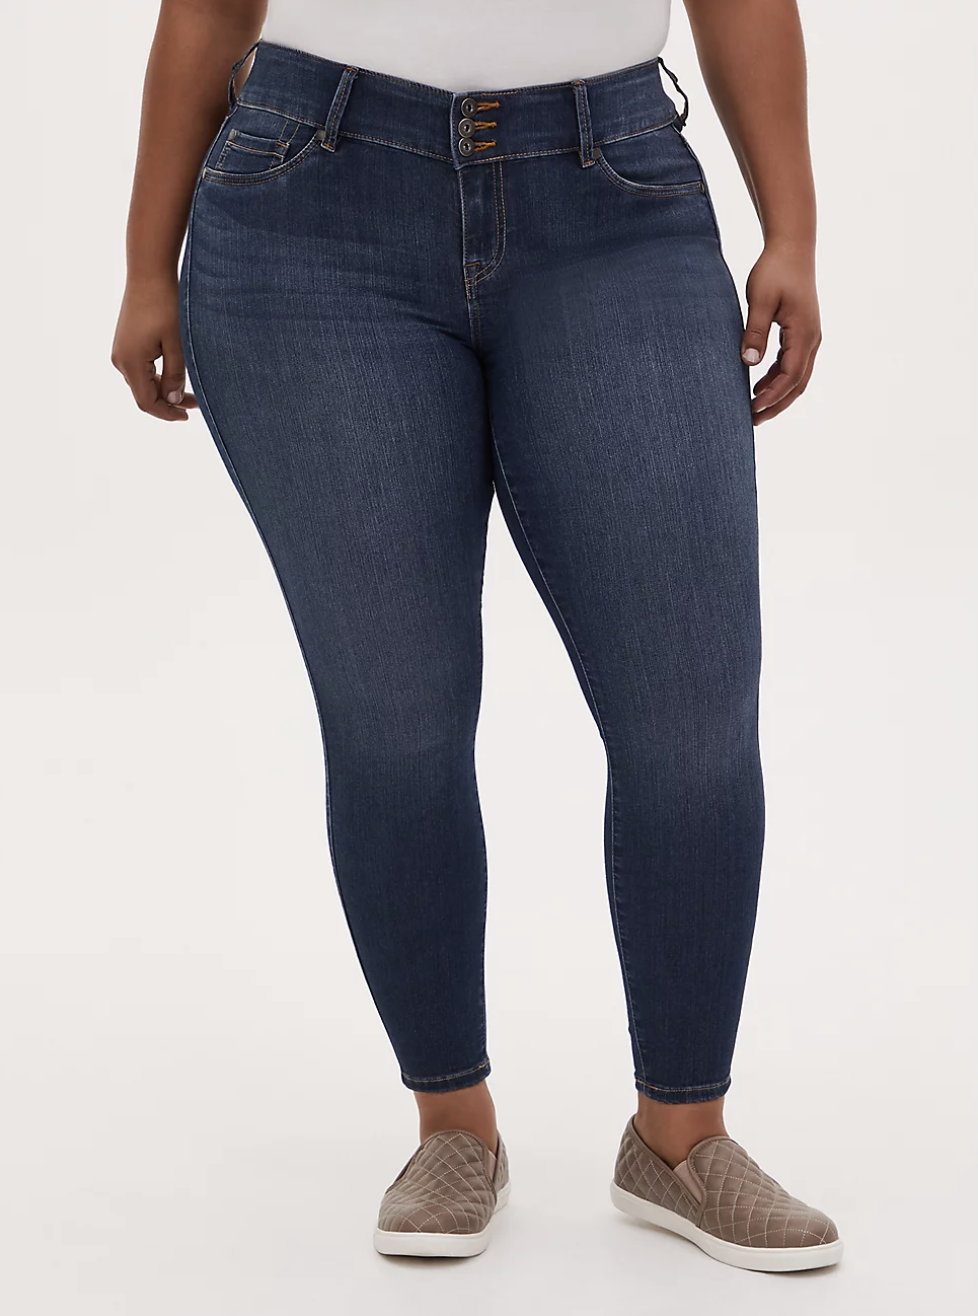 torrid jeggings, best new jeans zodiac sign